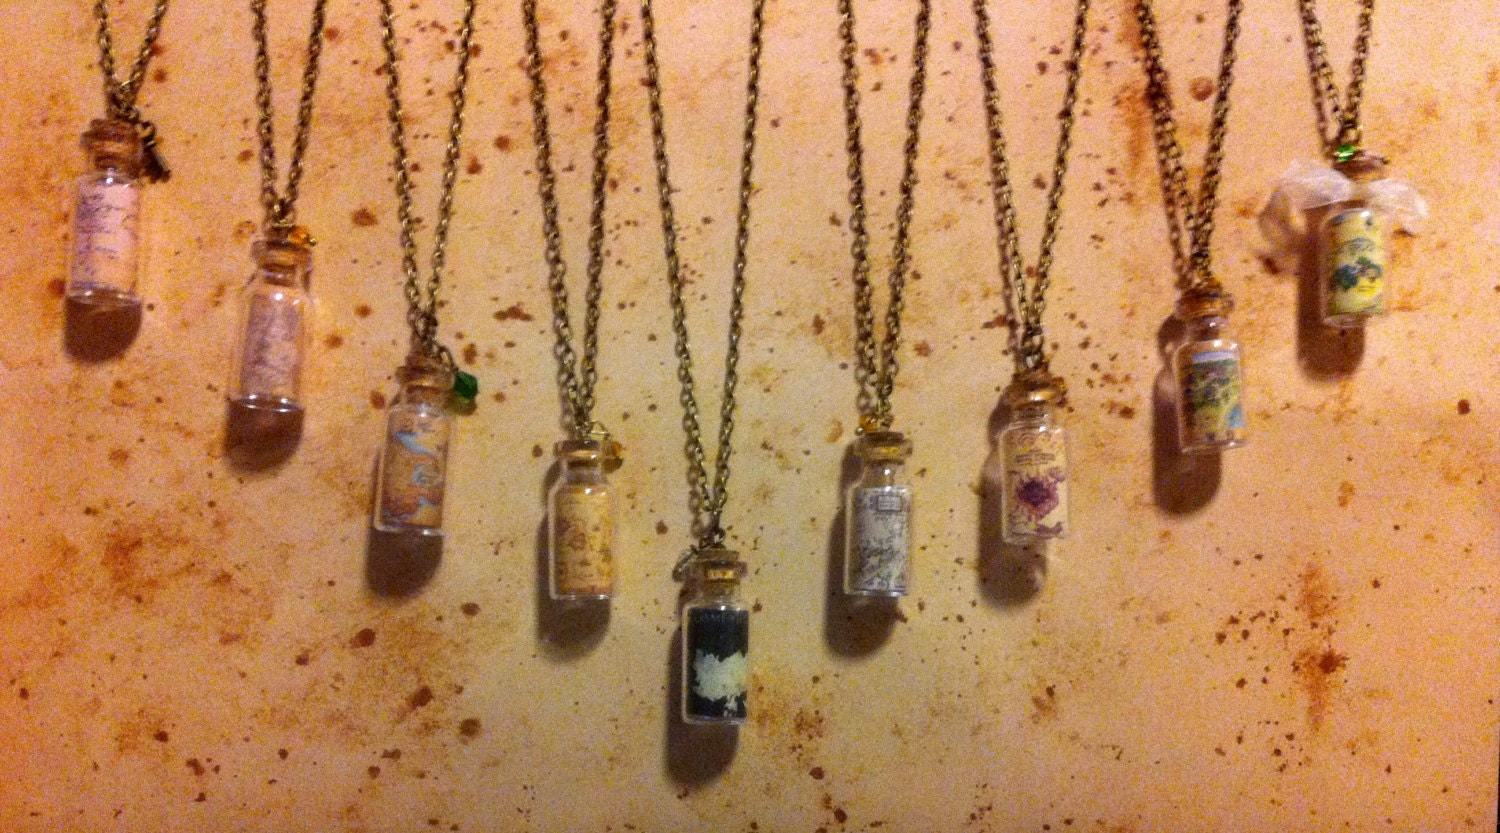 Fantasy Map Vial Necklace Collection (Featuring Middle Earth, Neverland, Hogwarts, Narnia and more) - KawaiiCandyCouture